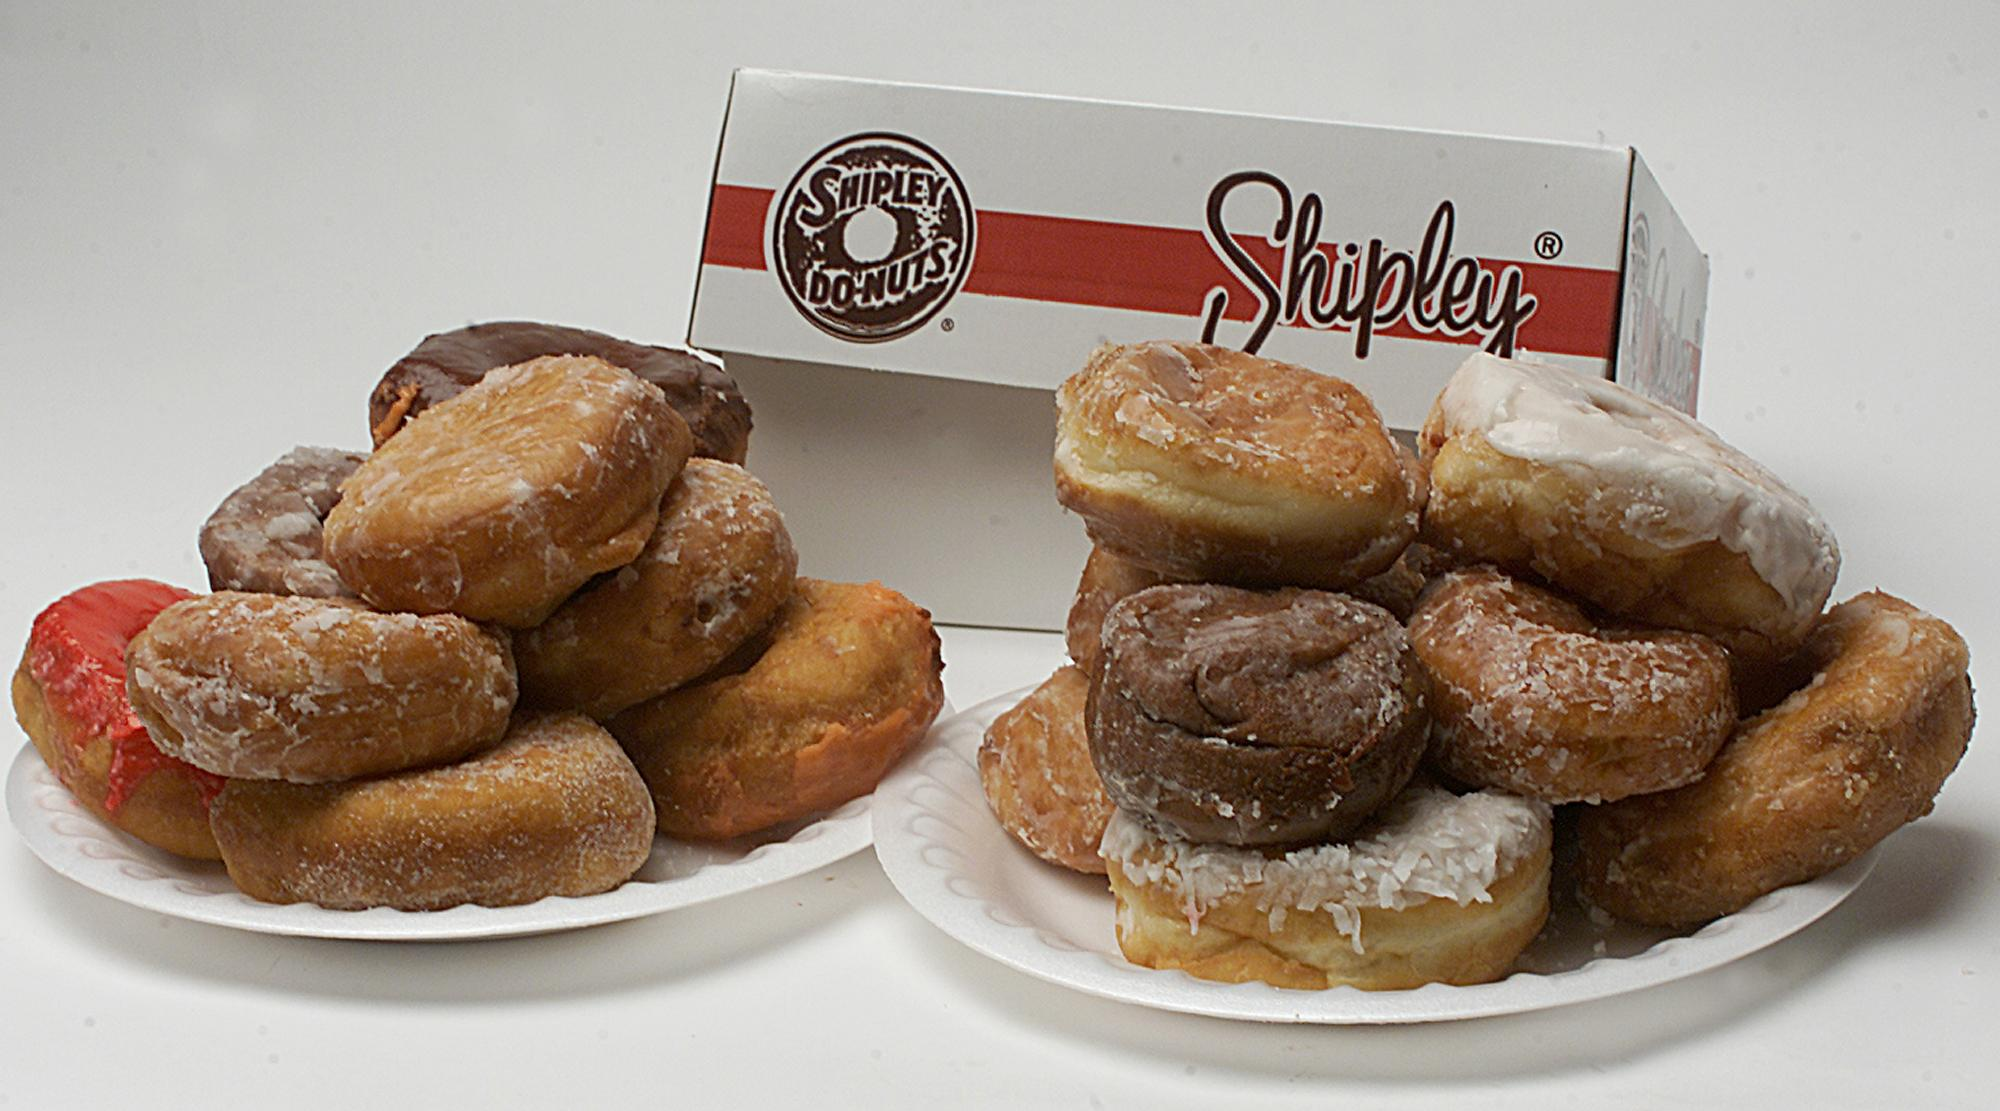 Shipley Do Nuts Serves Up A Box Of Scandal And Risks